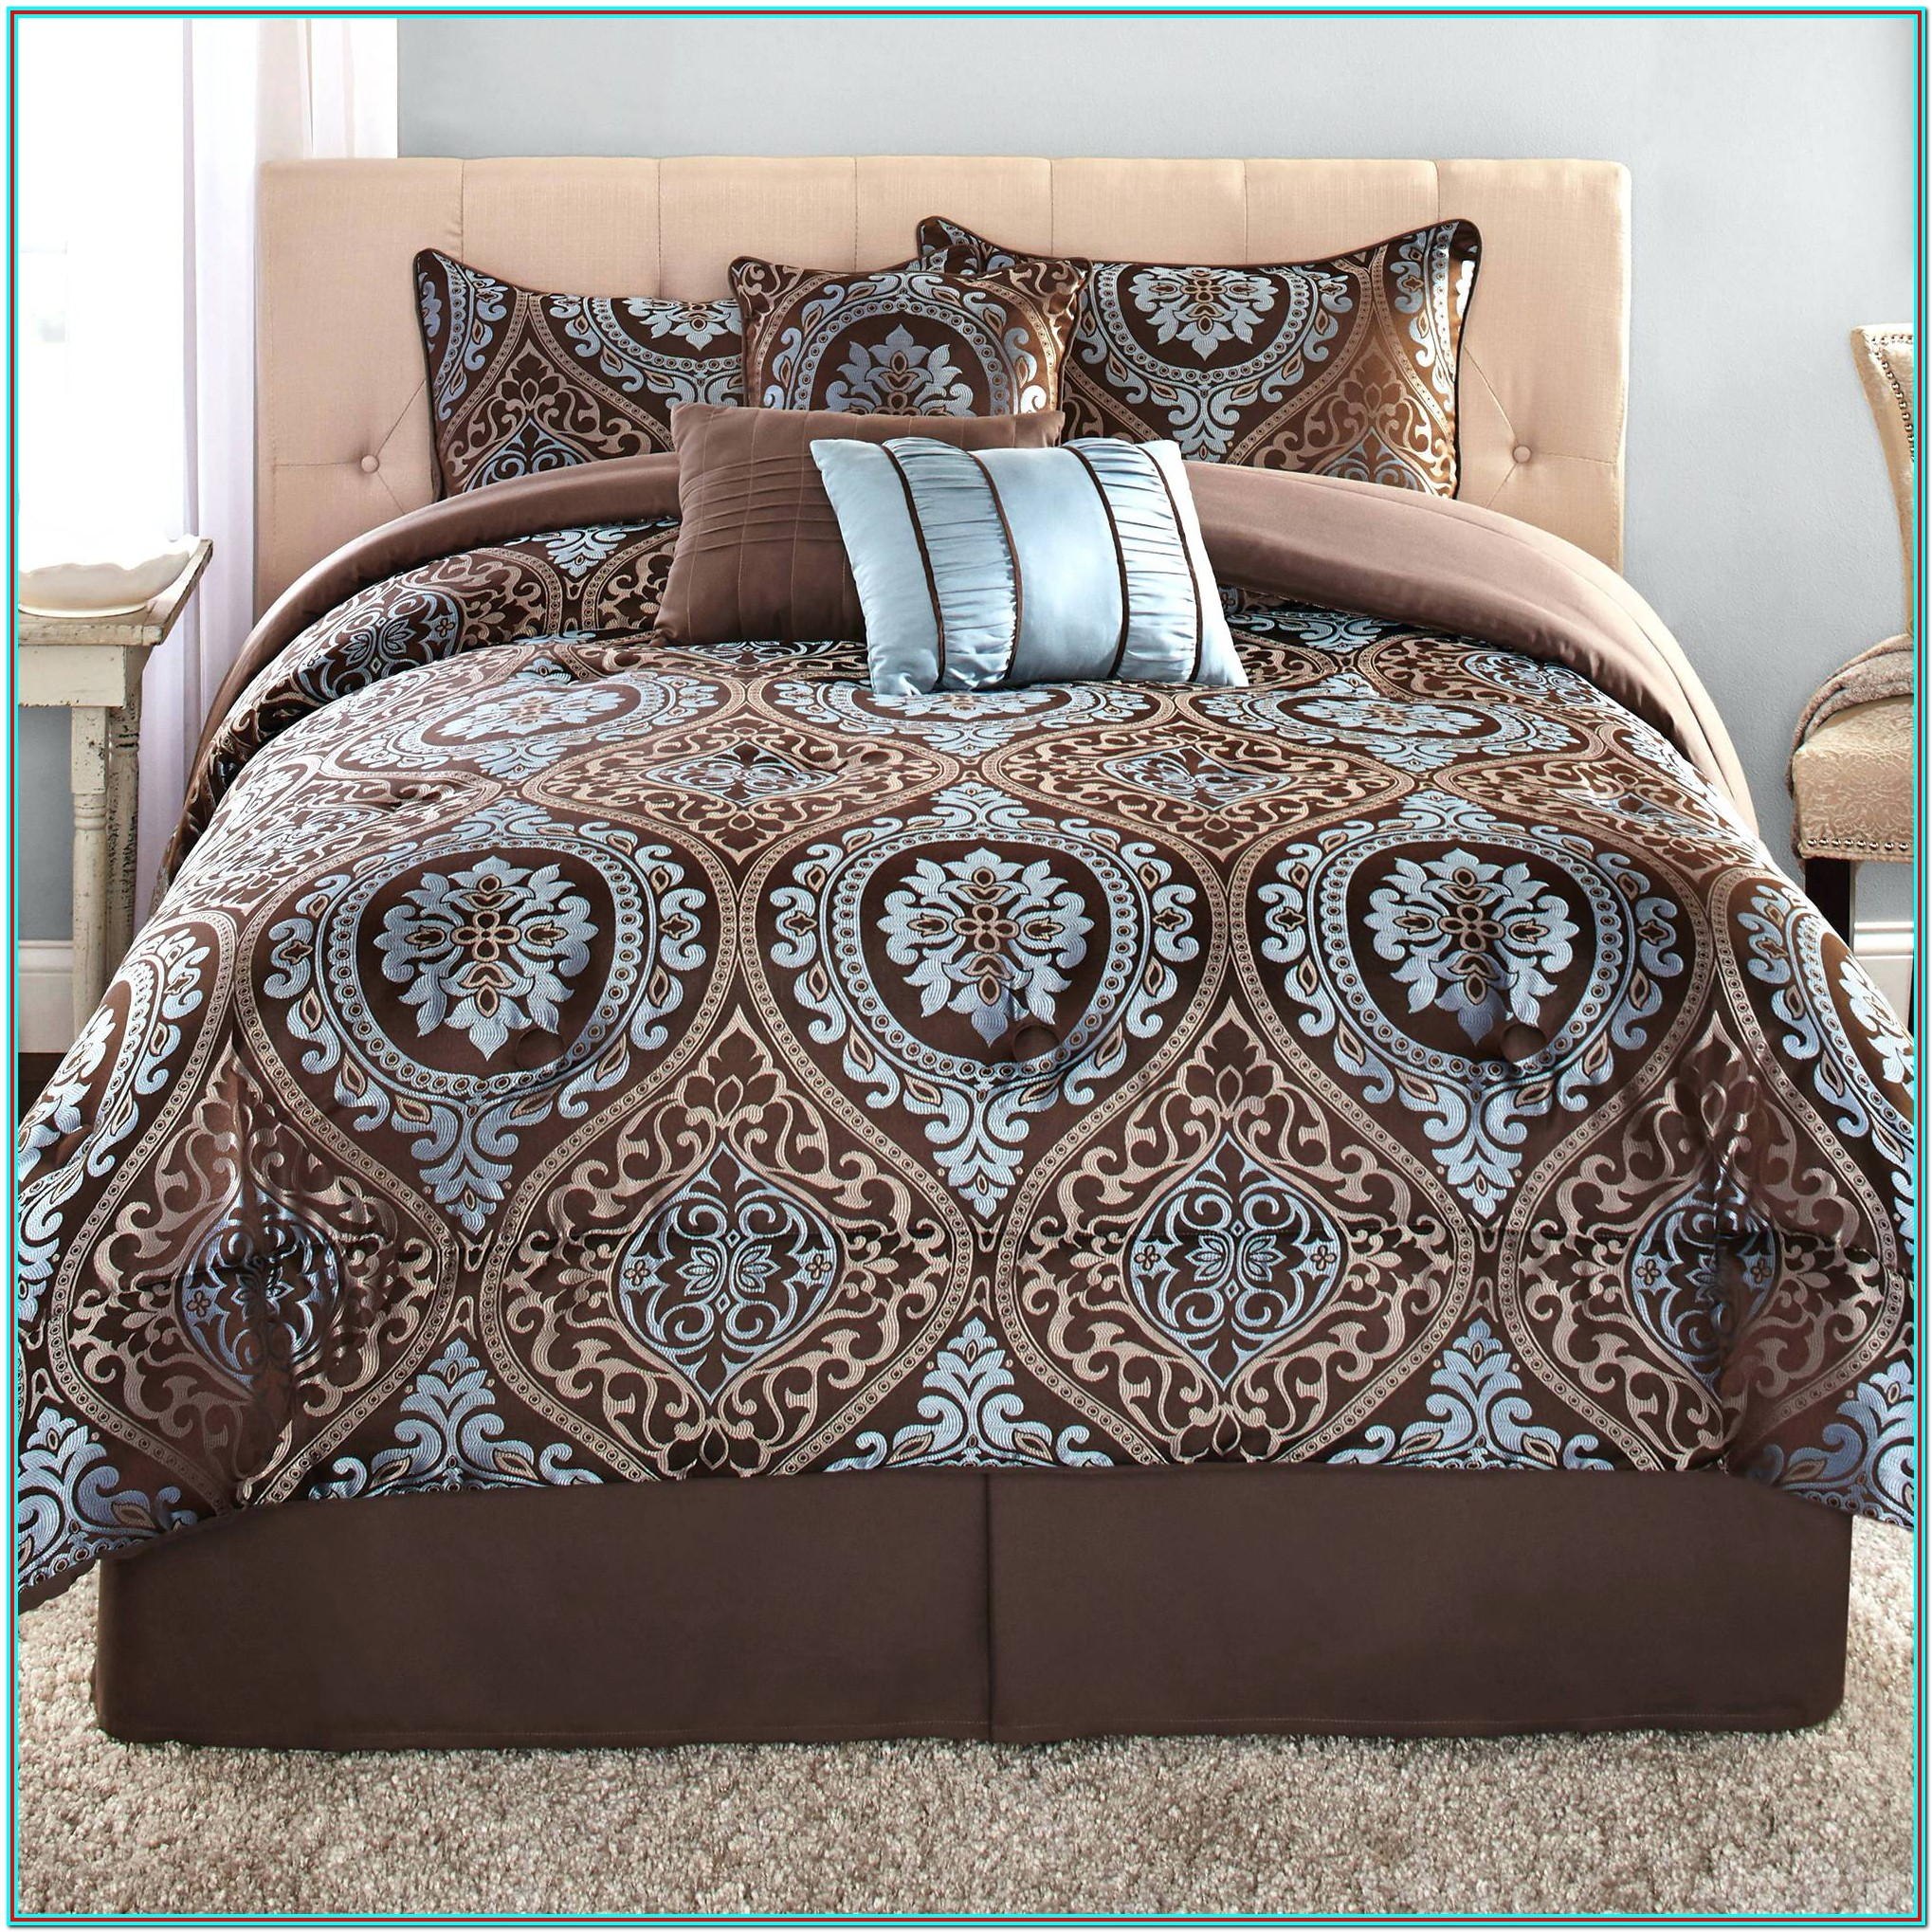 King Size Bed Sets Canada